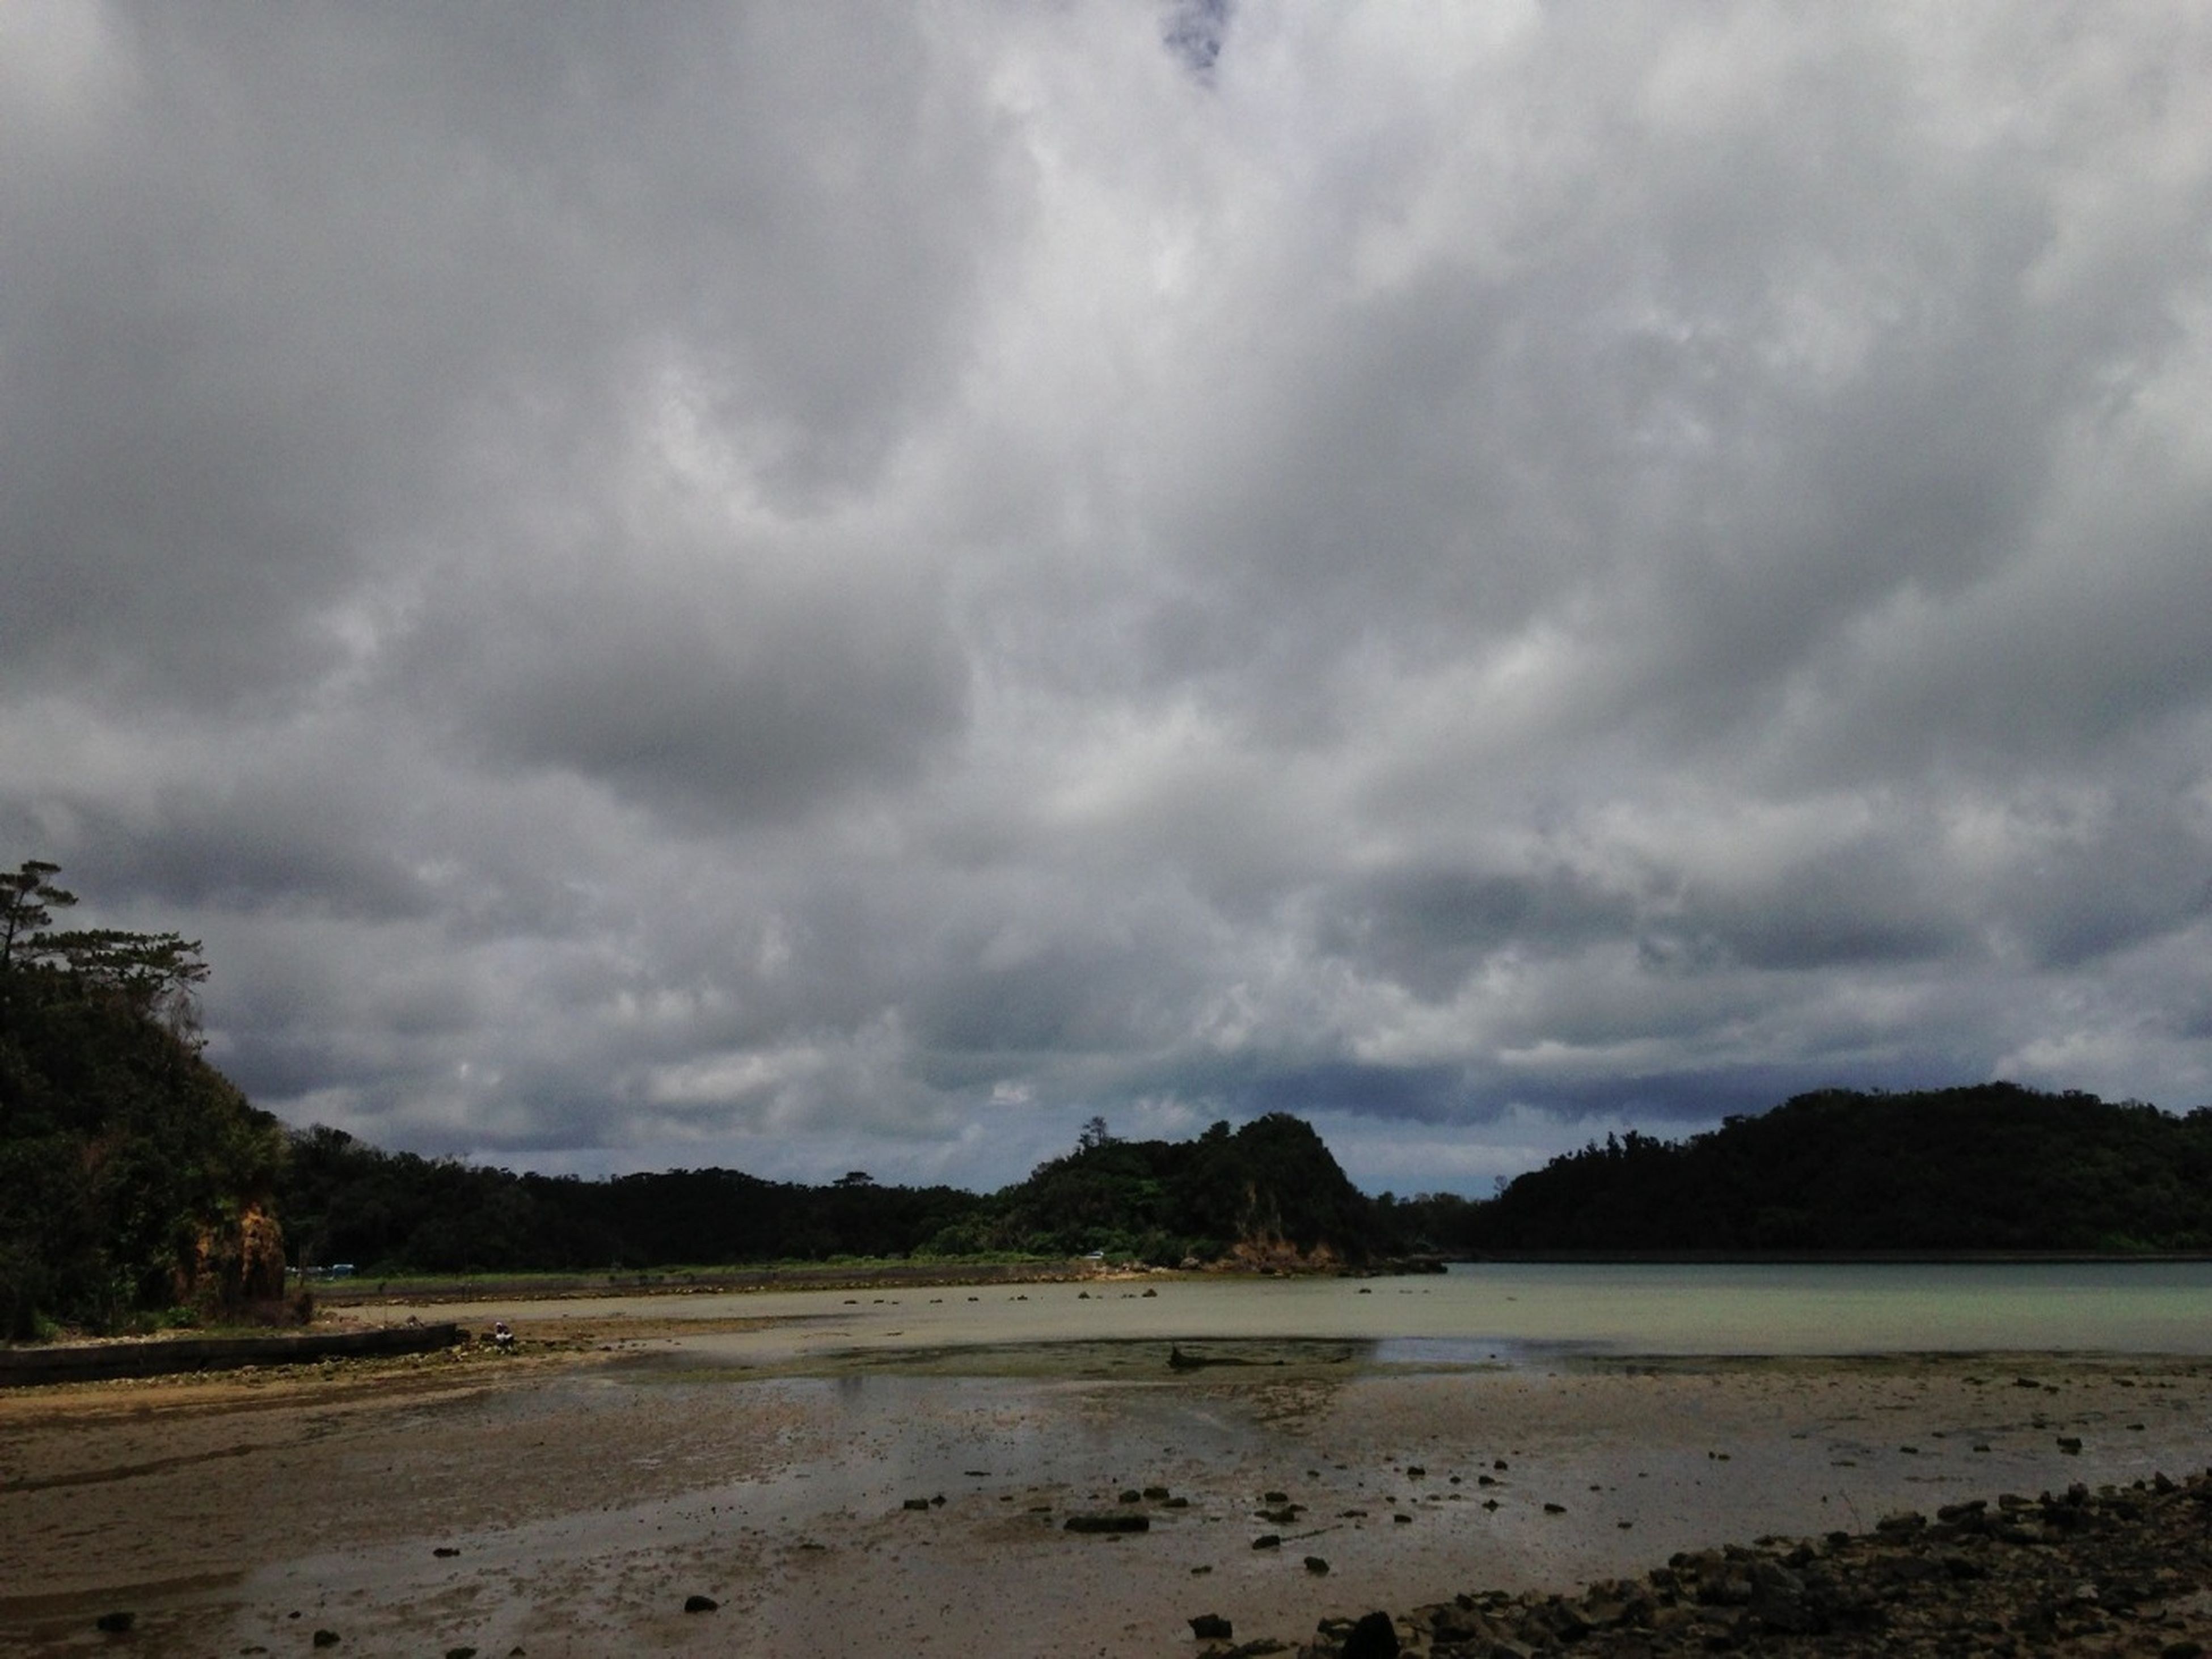 sky, cloud - sky, tranquil scene, tranquility, scenics, water, cloudy, beauty in nature, beach, nature, shore, weather, cloud, sand, overcast, mountain, sea, idyllic, non-urban scene, landscape